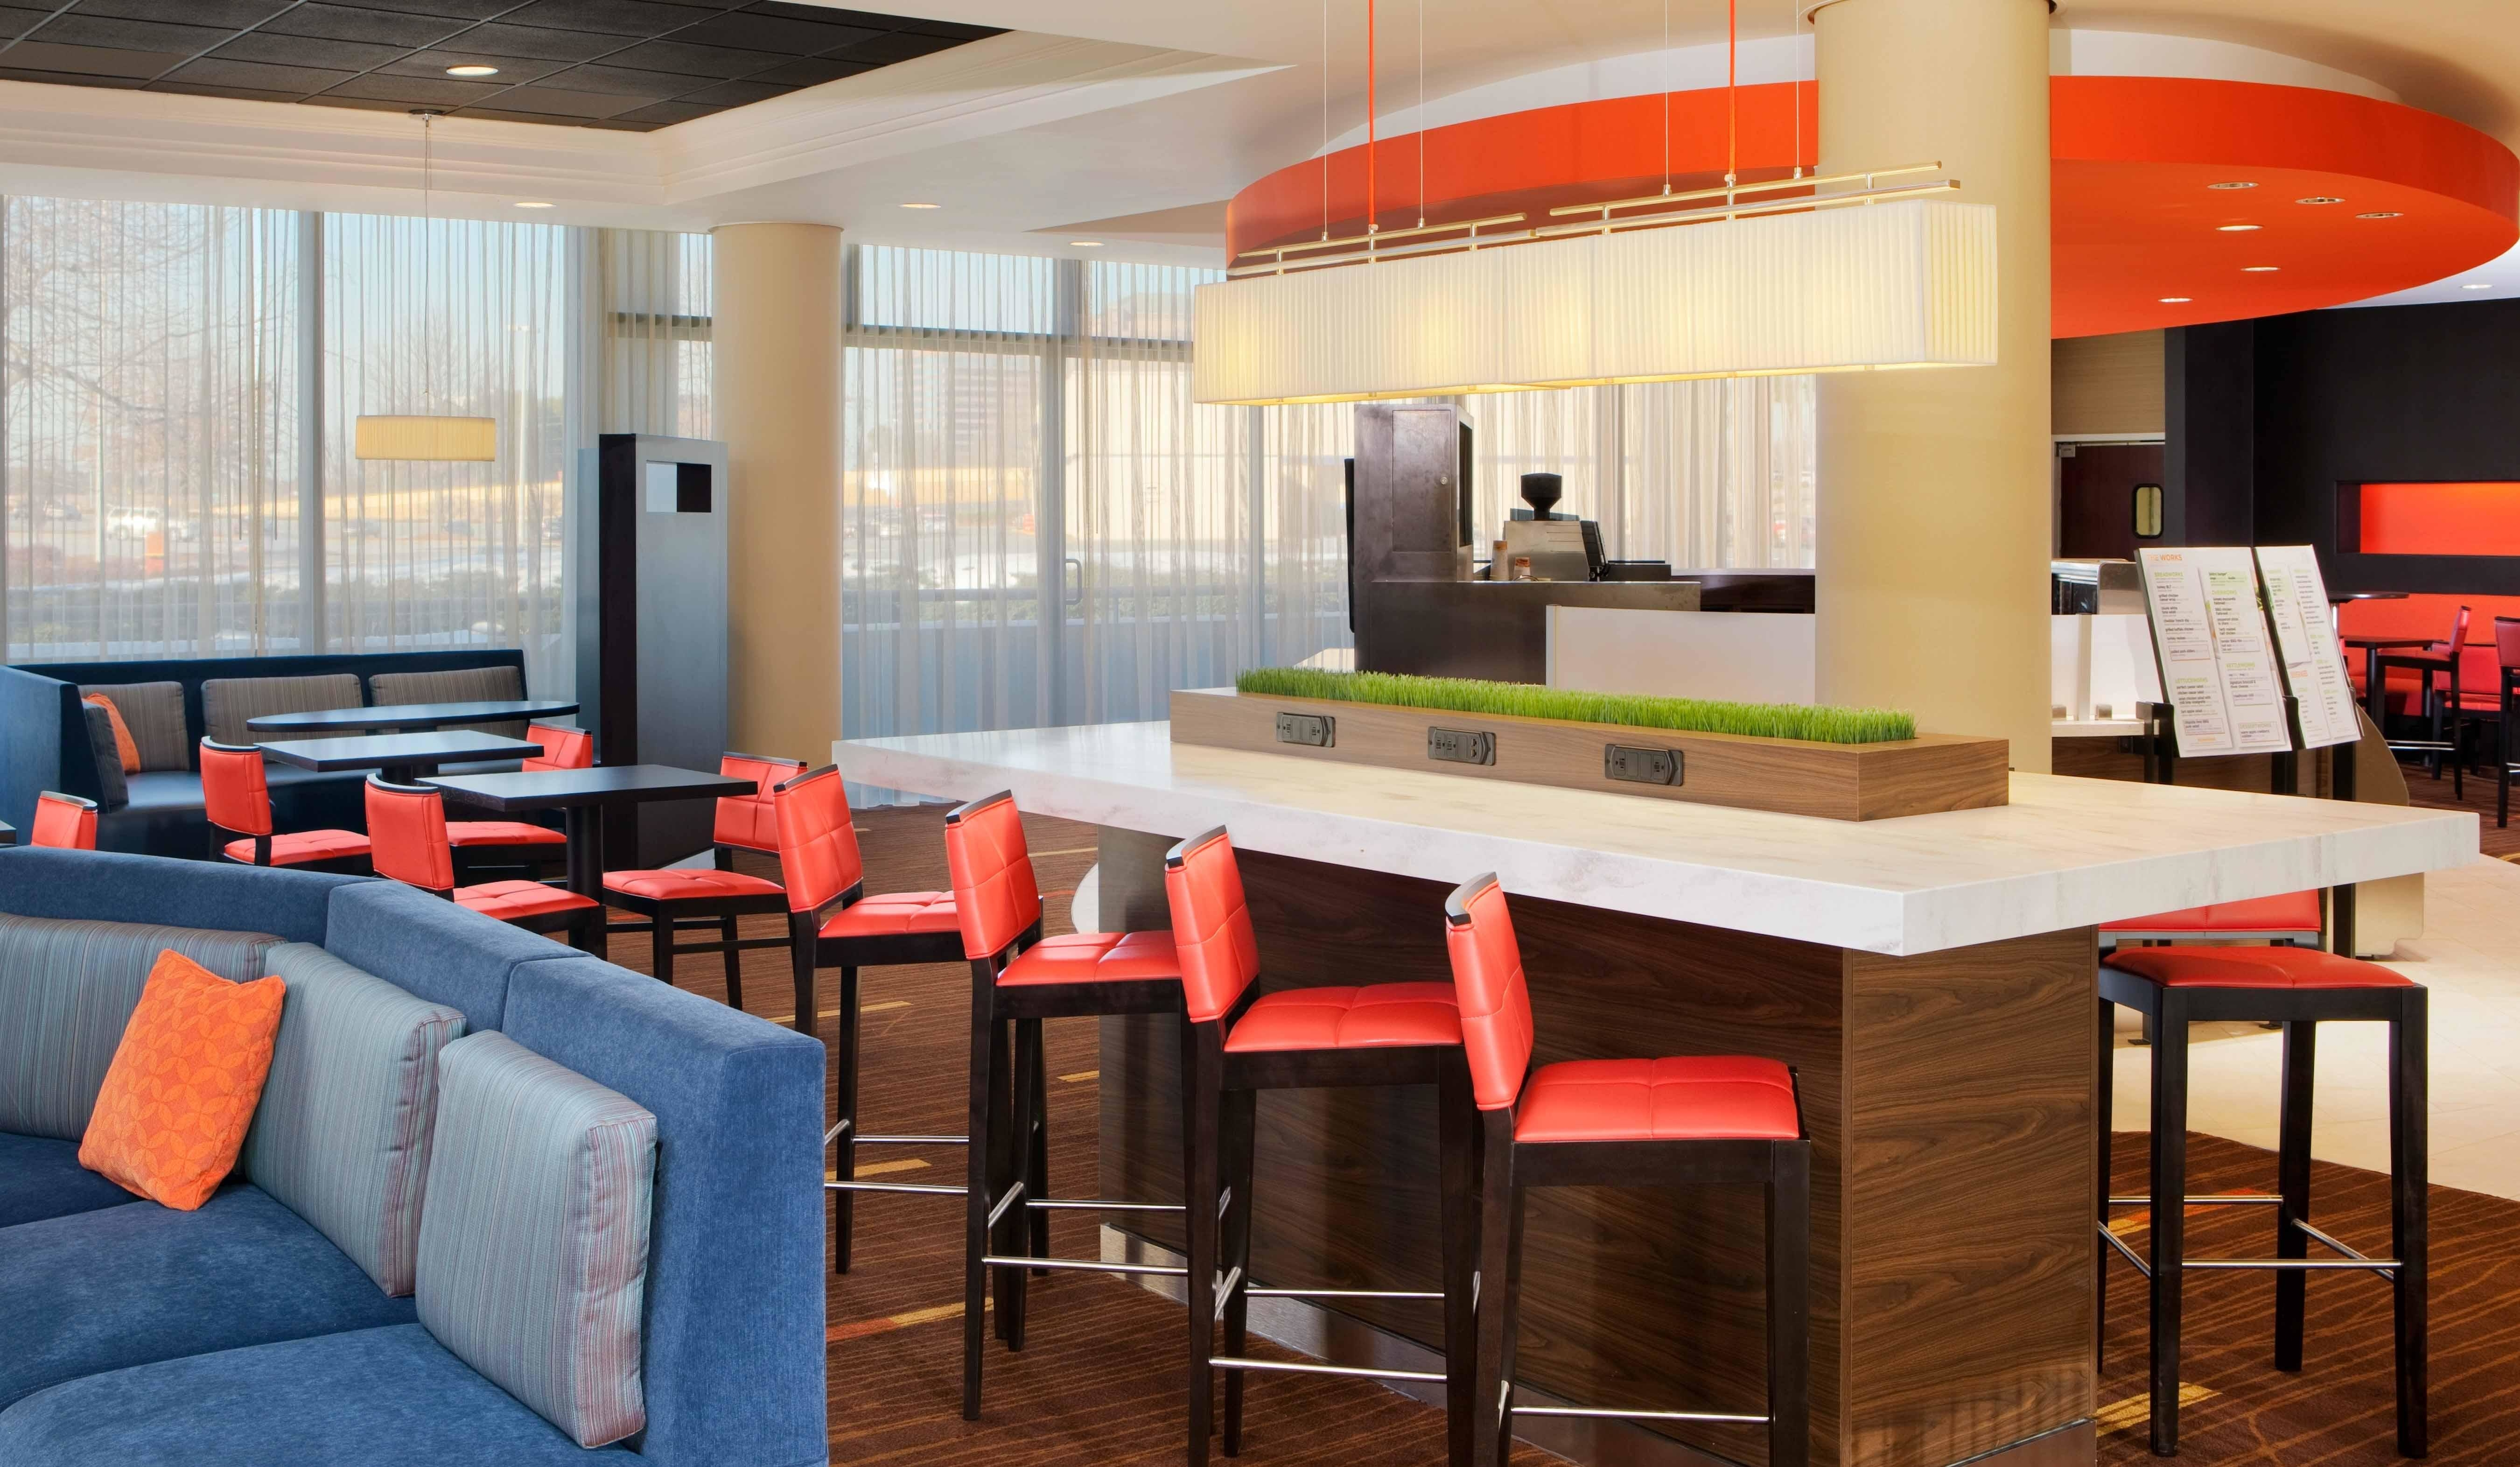 courtyard by marriott atlanta cumberland galleria coupons near me in atlanta 8coupons. Black Bedroom Furniture Sets. Home Design Ideas